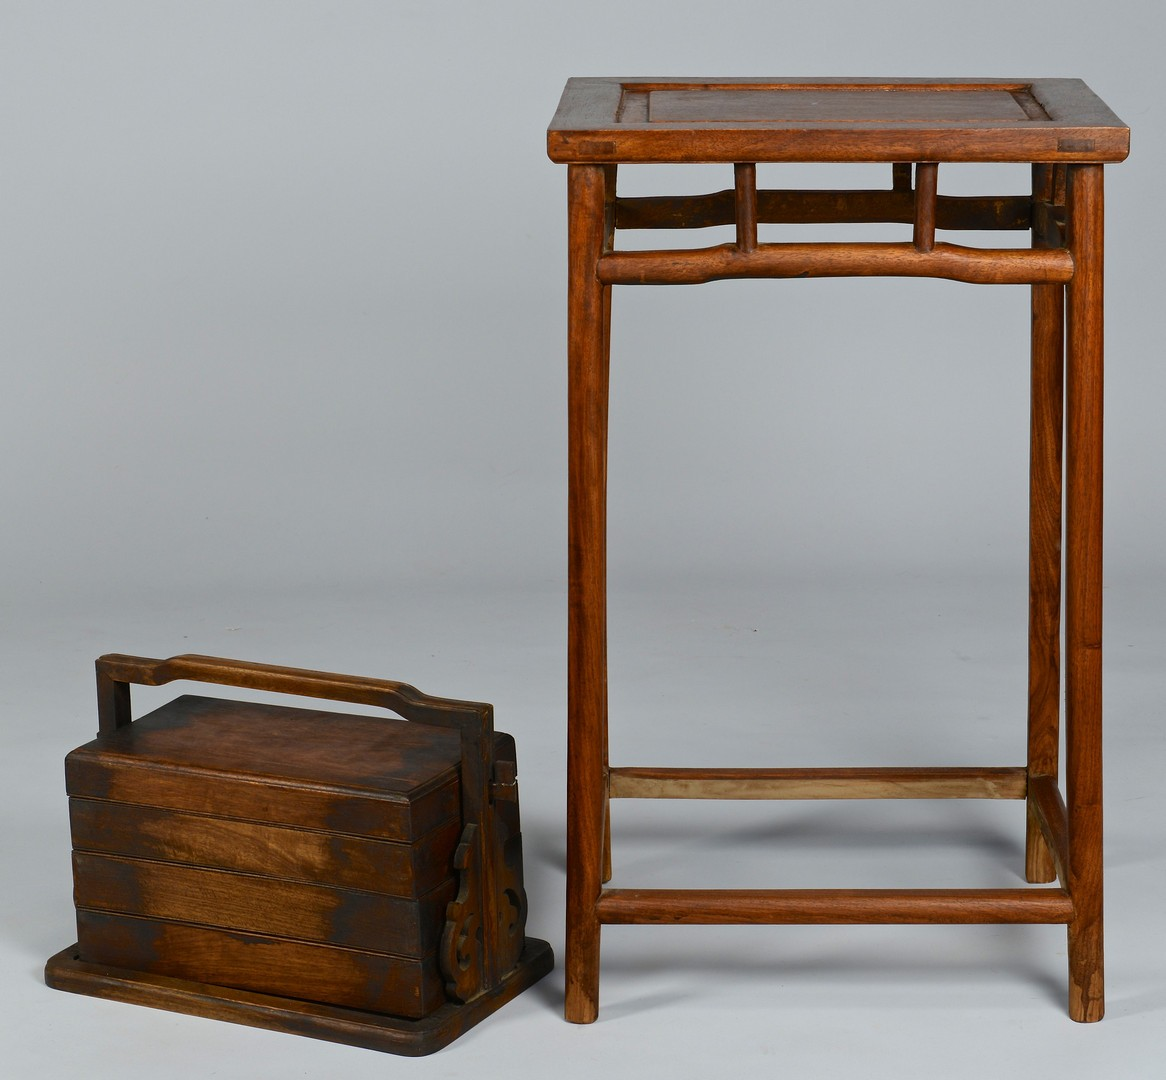 Lot 3383161: Chinese Hardwood Plant Stand & Lunchbox